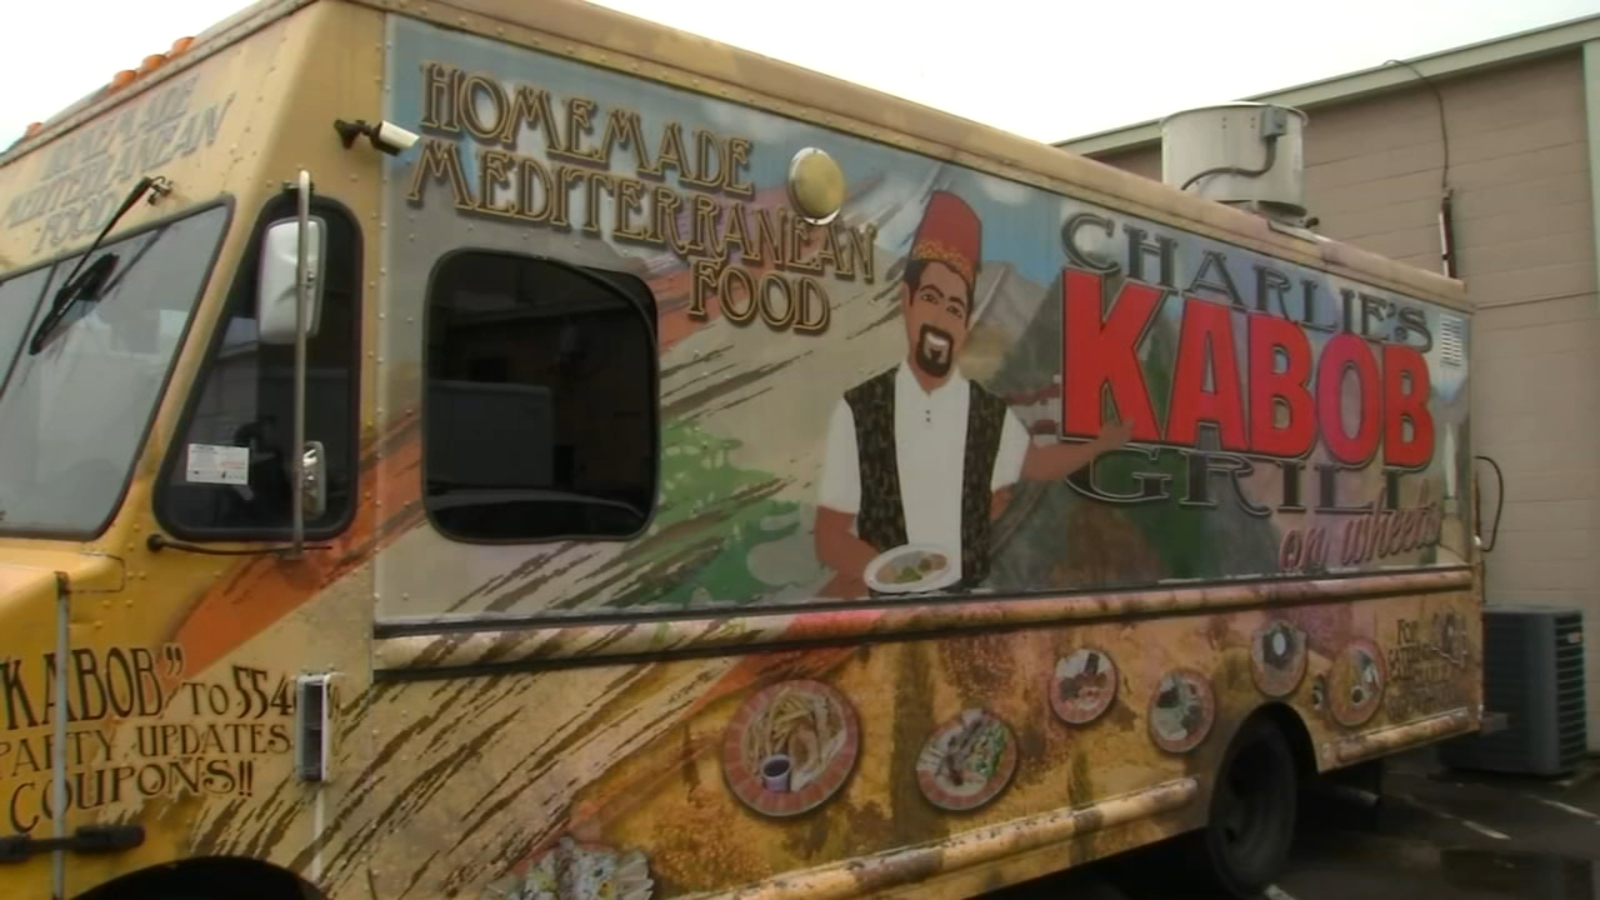 North Carolina food trucks made big bucks during major events and festivals. Then COVID-19 caused cancellations.